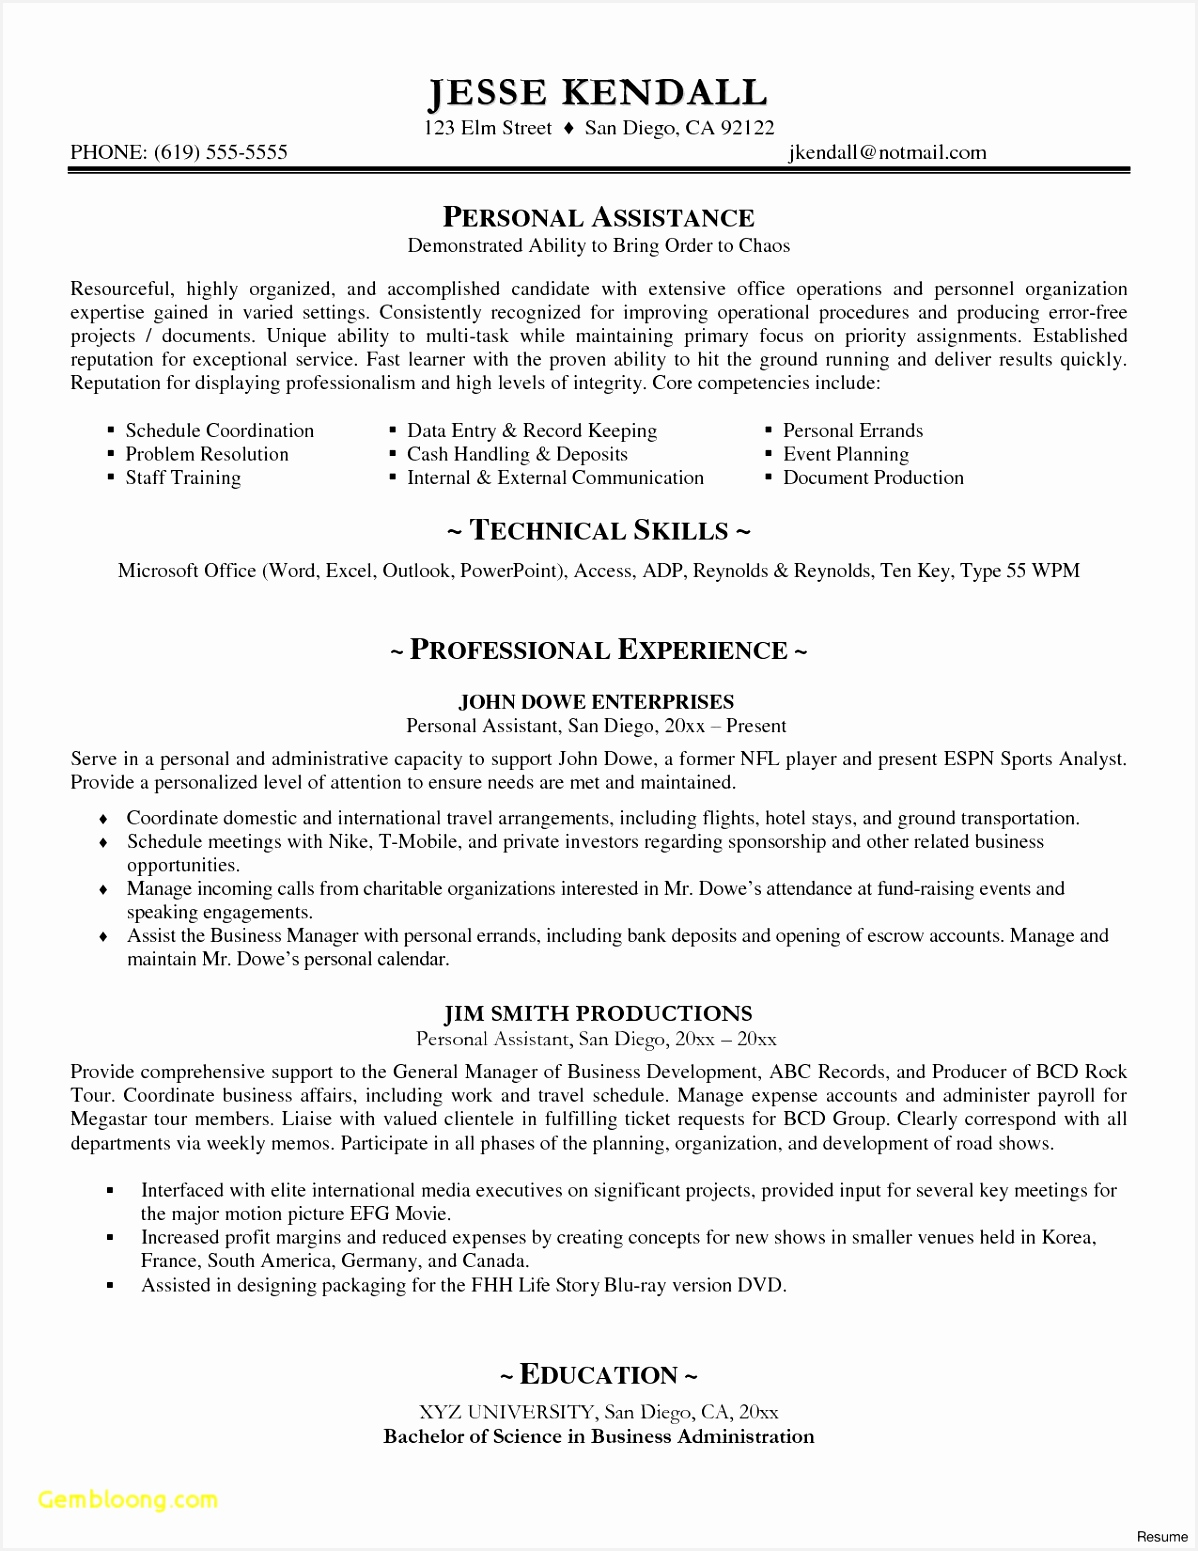 American Resume Examples Sample Resume format Excel Unique Cv Examples Lovely 0d Standard Template 15511198llziy